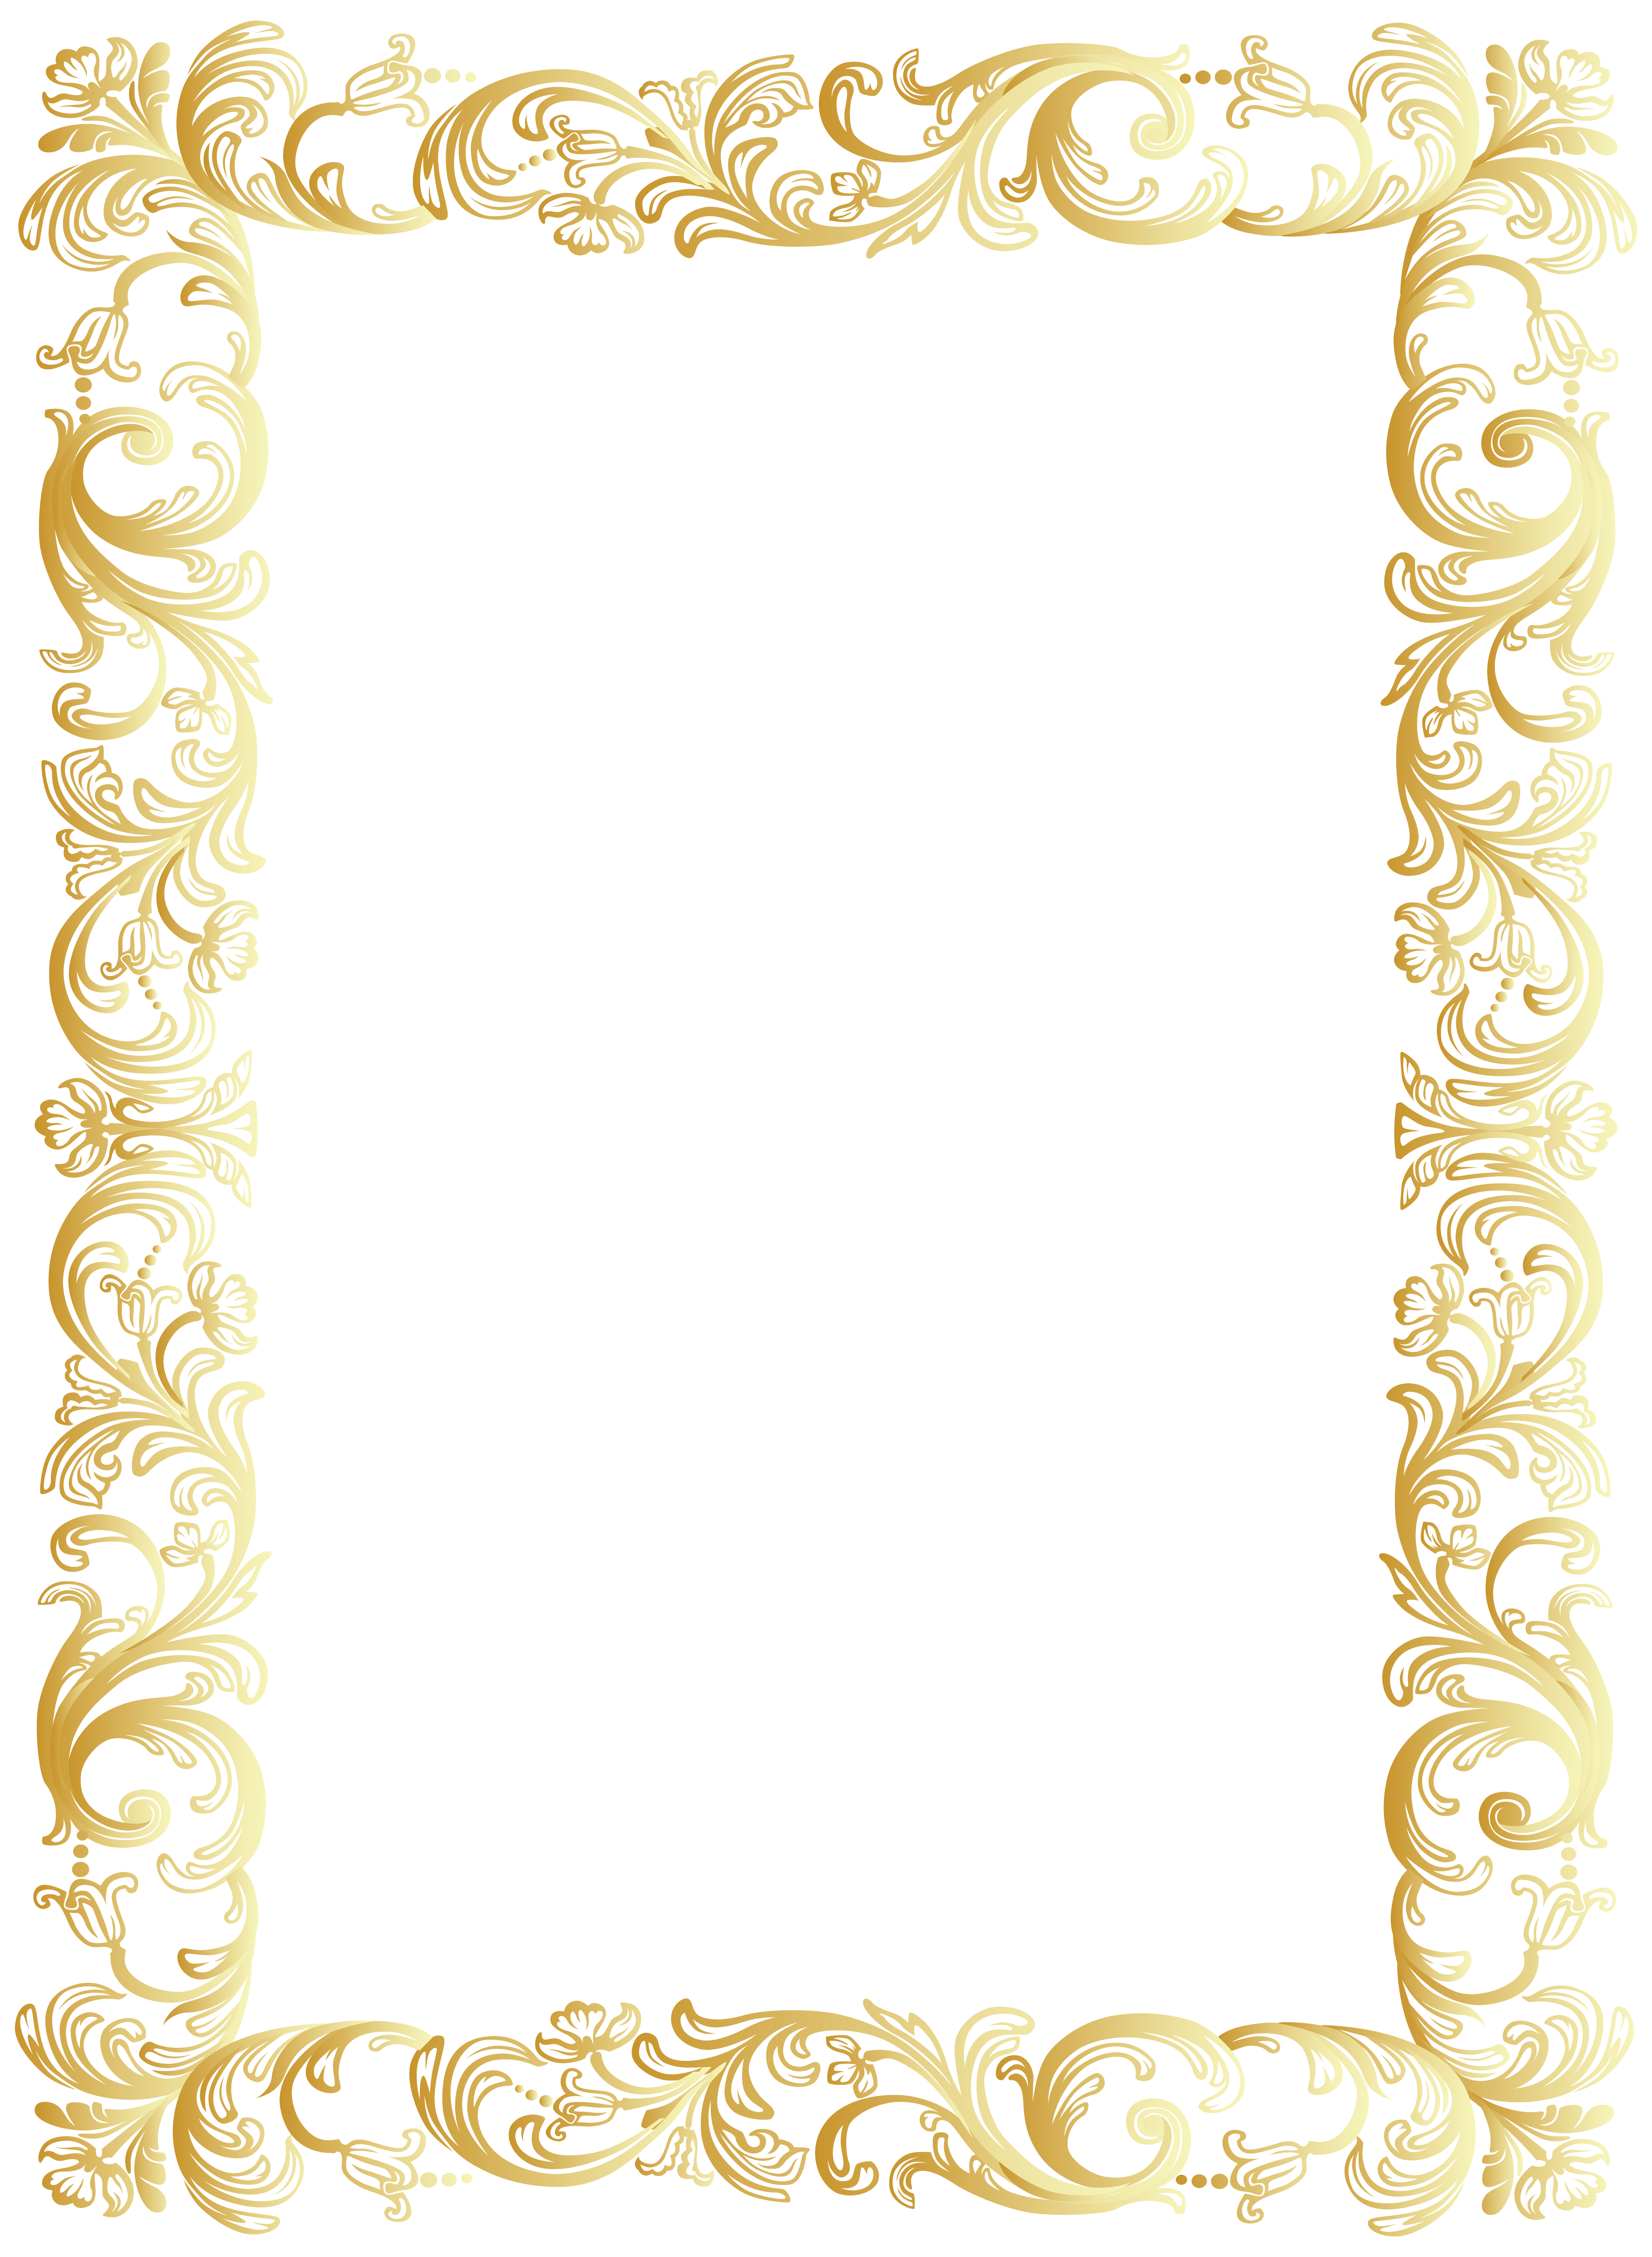 Vintage Border Frame Clip Art Png Image Gallery Yopriceville High Quality Images And Transparent Png Clip Art Frames Borders Vintage Borders Frame Clipart